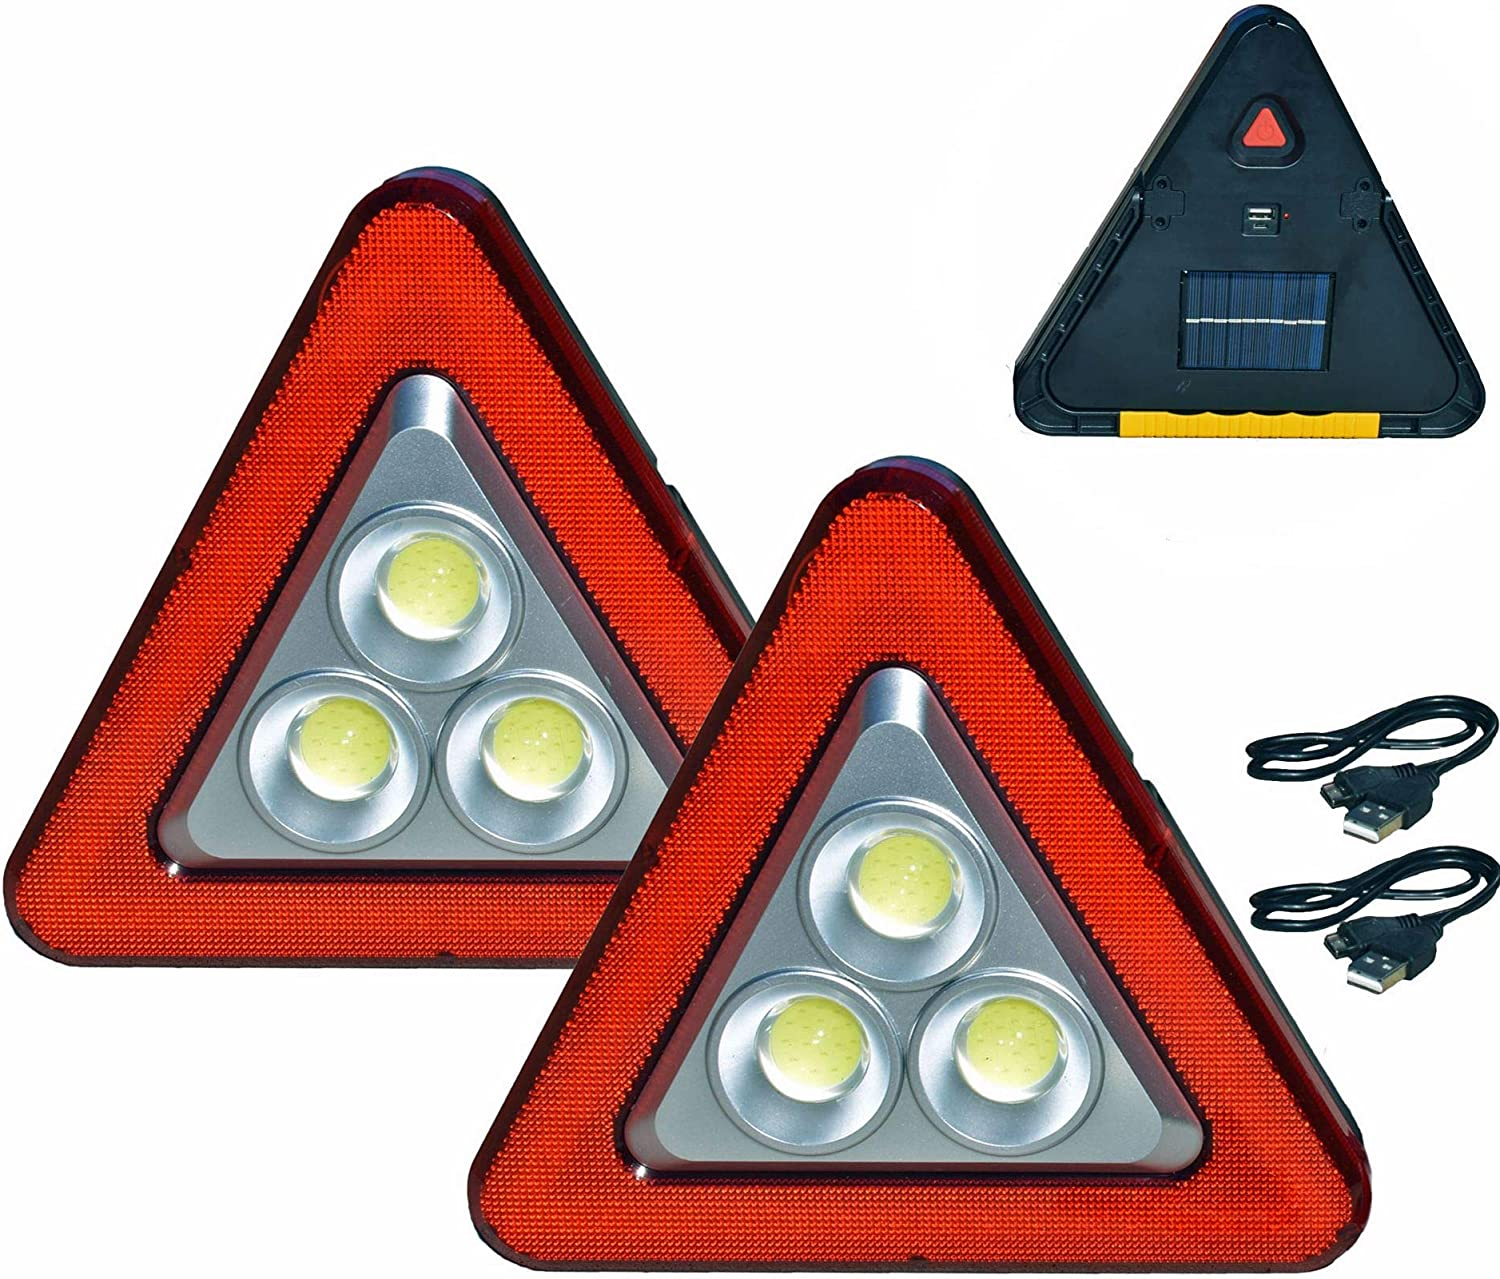 Multifunctional Warning Triangle Vehicle Danger Warning Sign USB Charging LED car Maintenance Work Light Outdoor Camping Fishing Light